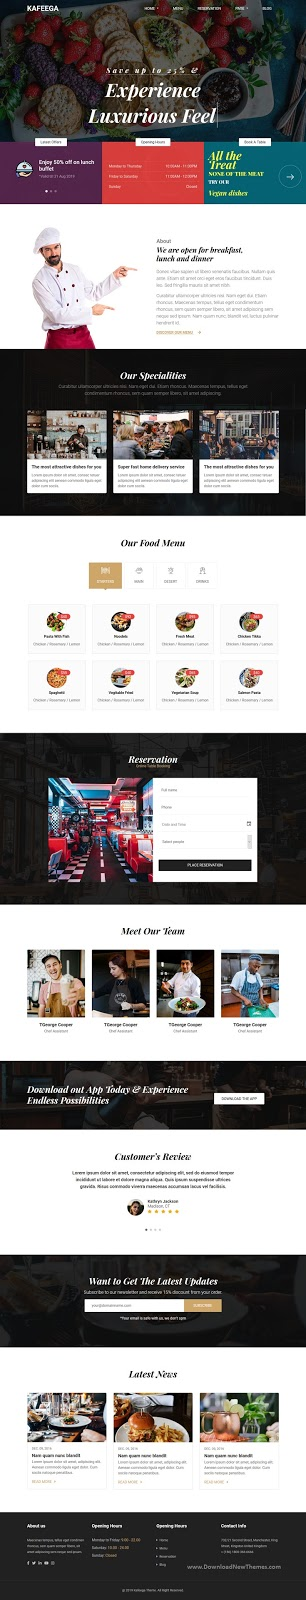 Website template for Restaurants & Food Business